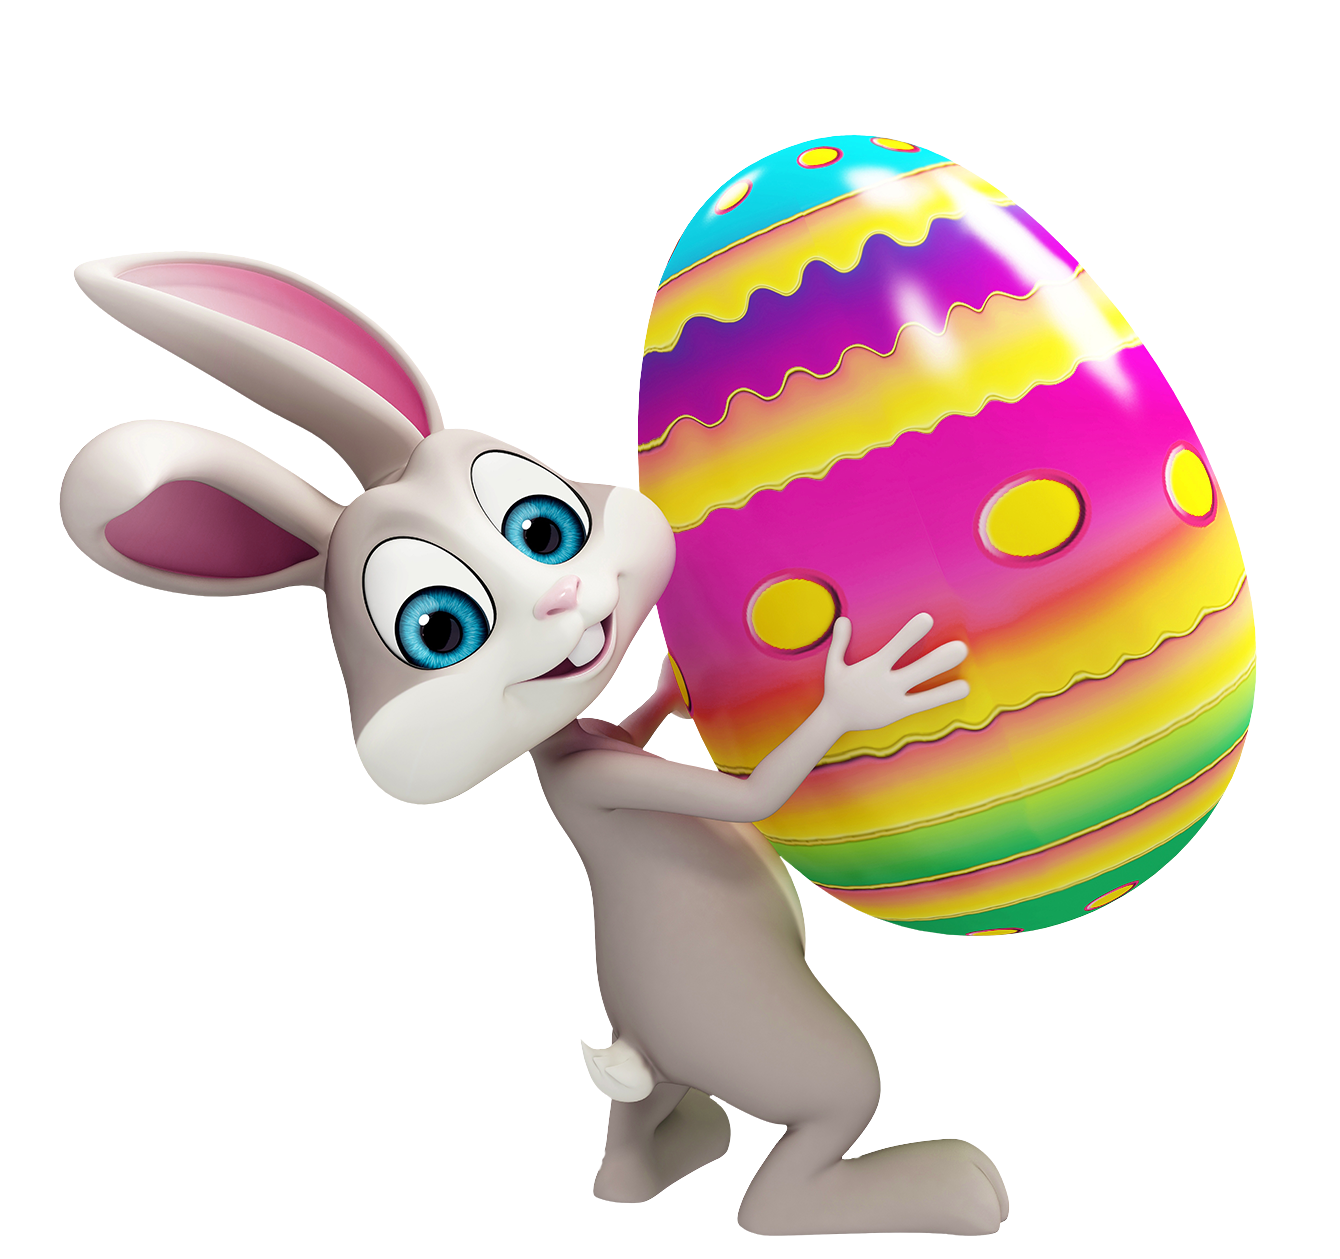 Easter bunny transparent png. With colorful egg clipart